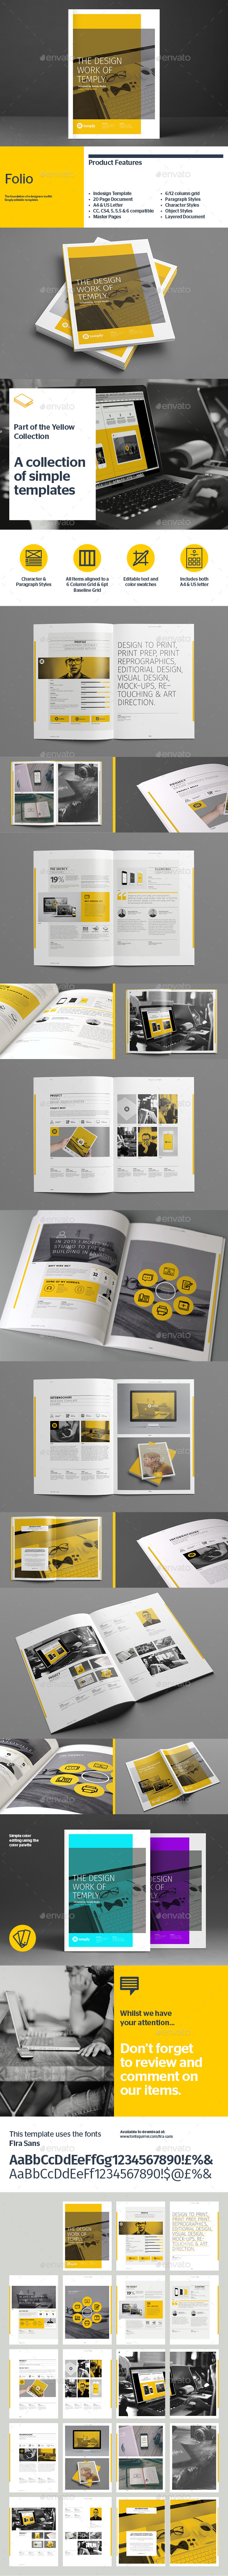 GraphicRiver Folio Template 8897328